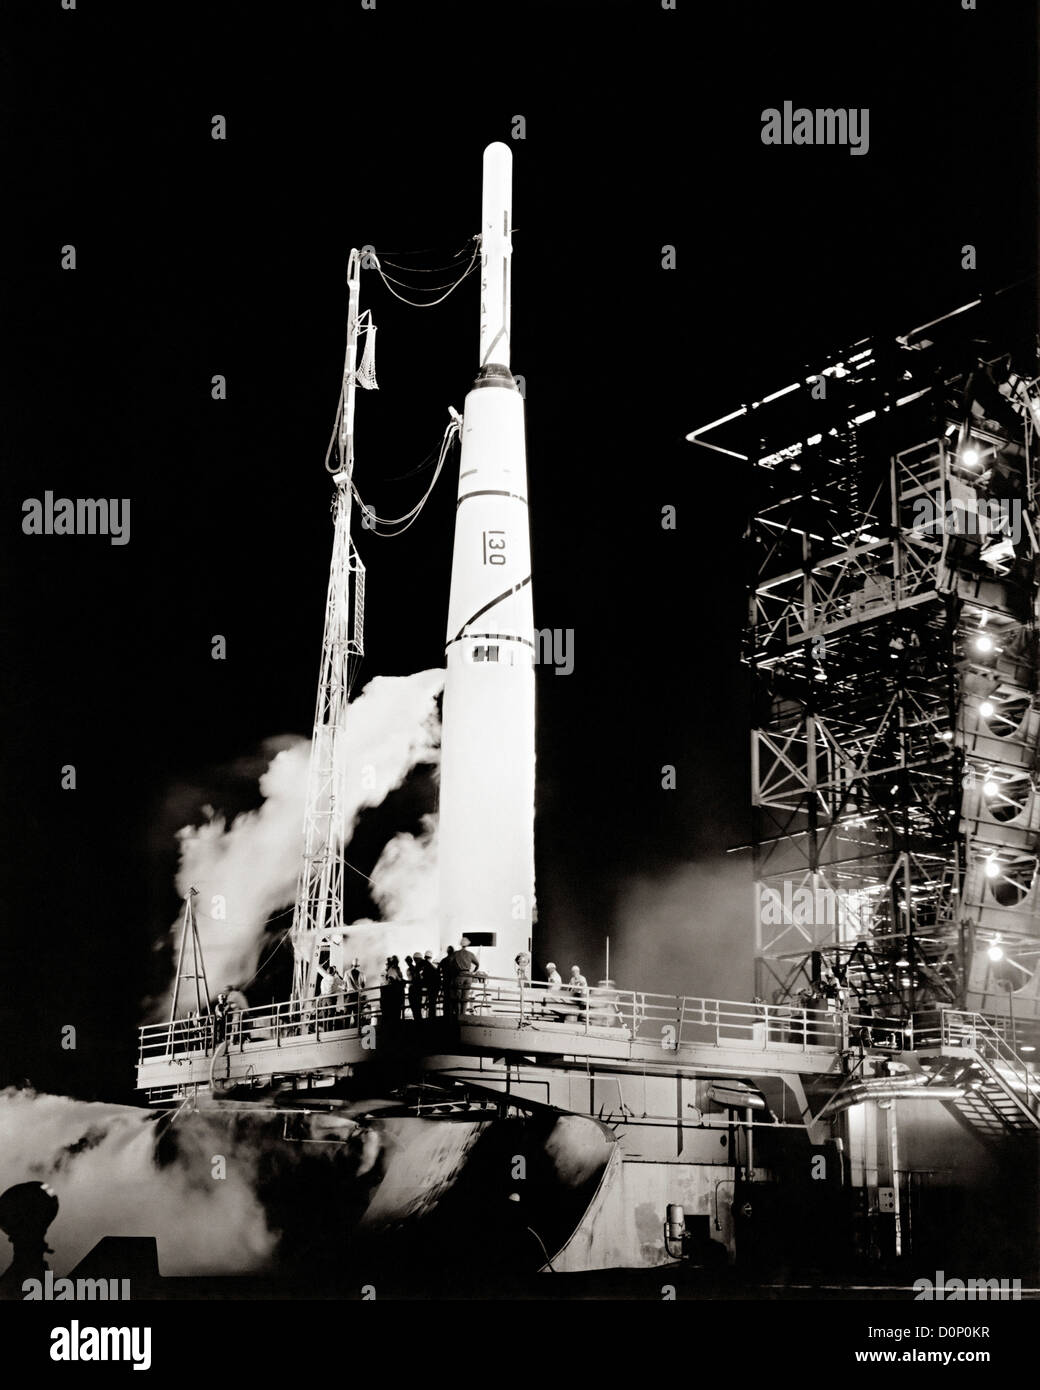 Pioneer 1 on Launch Pad - Stock Image